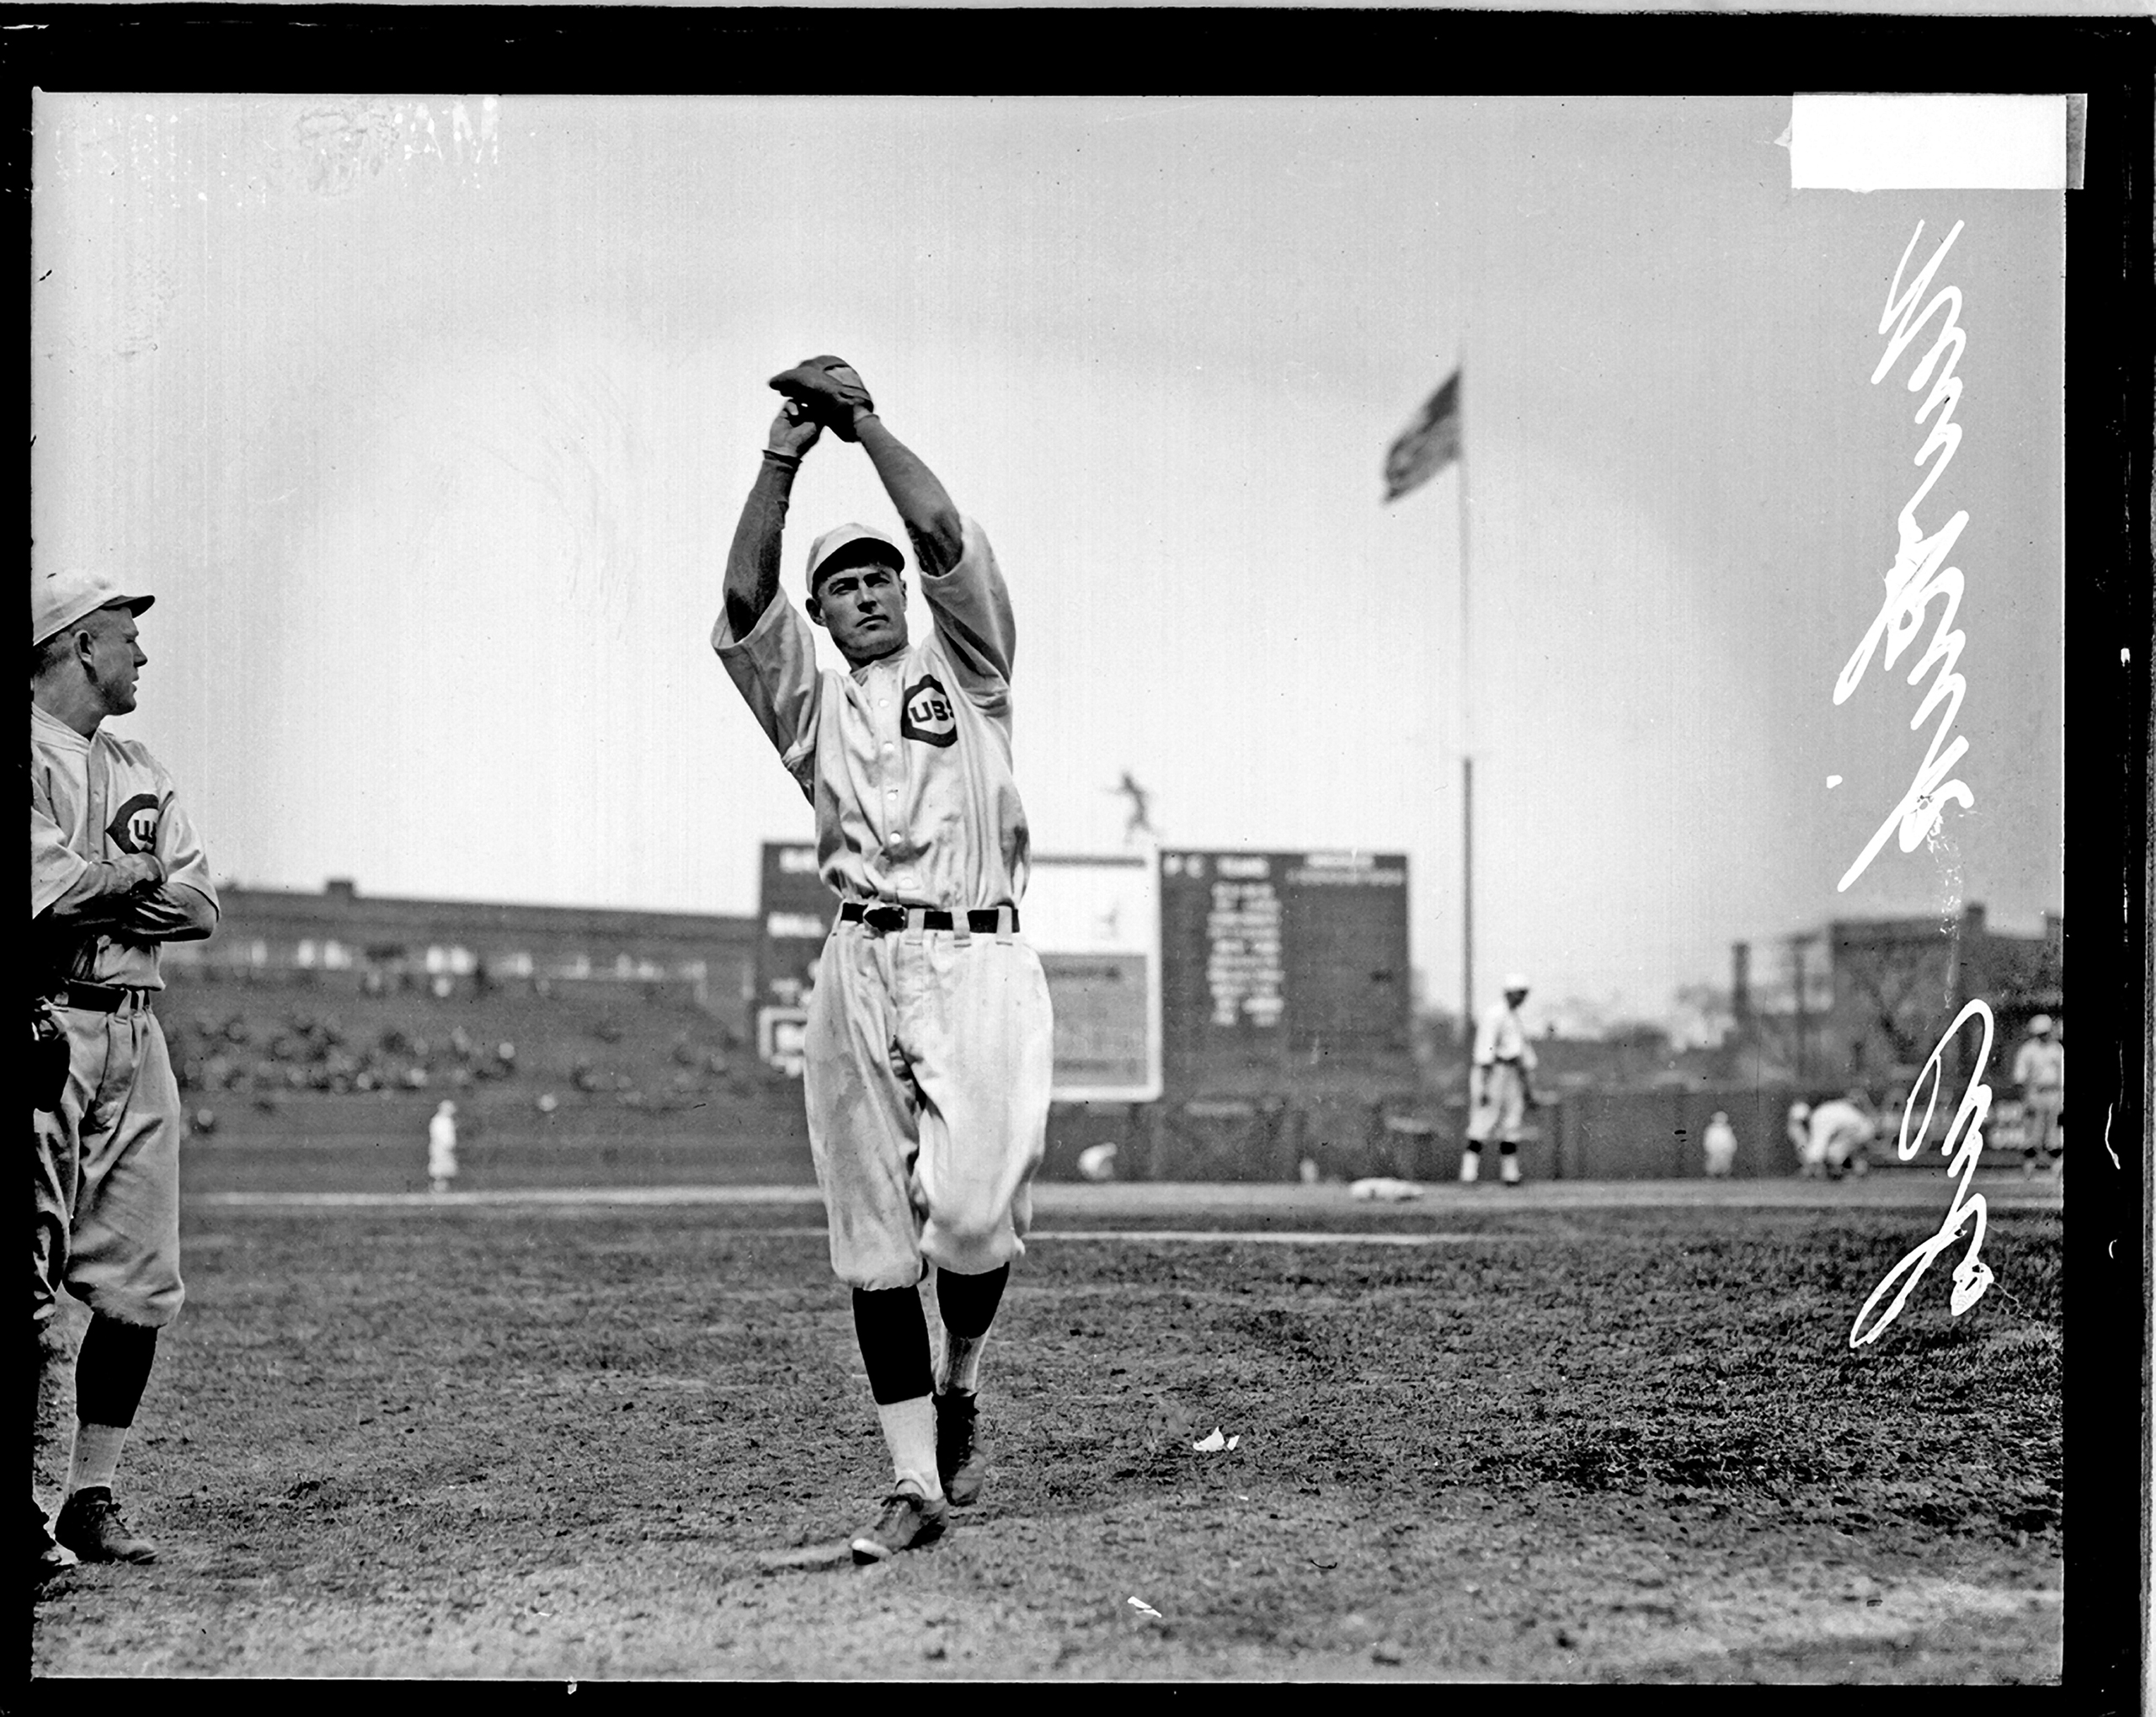 Chicago Cubs baseball player Newkirk winding up to throw a baseball at Weeghman Park, Chicago, 1920.